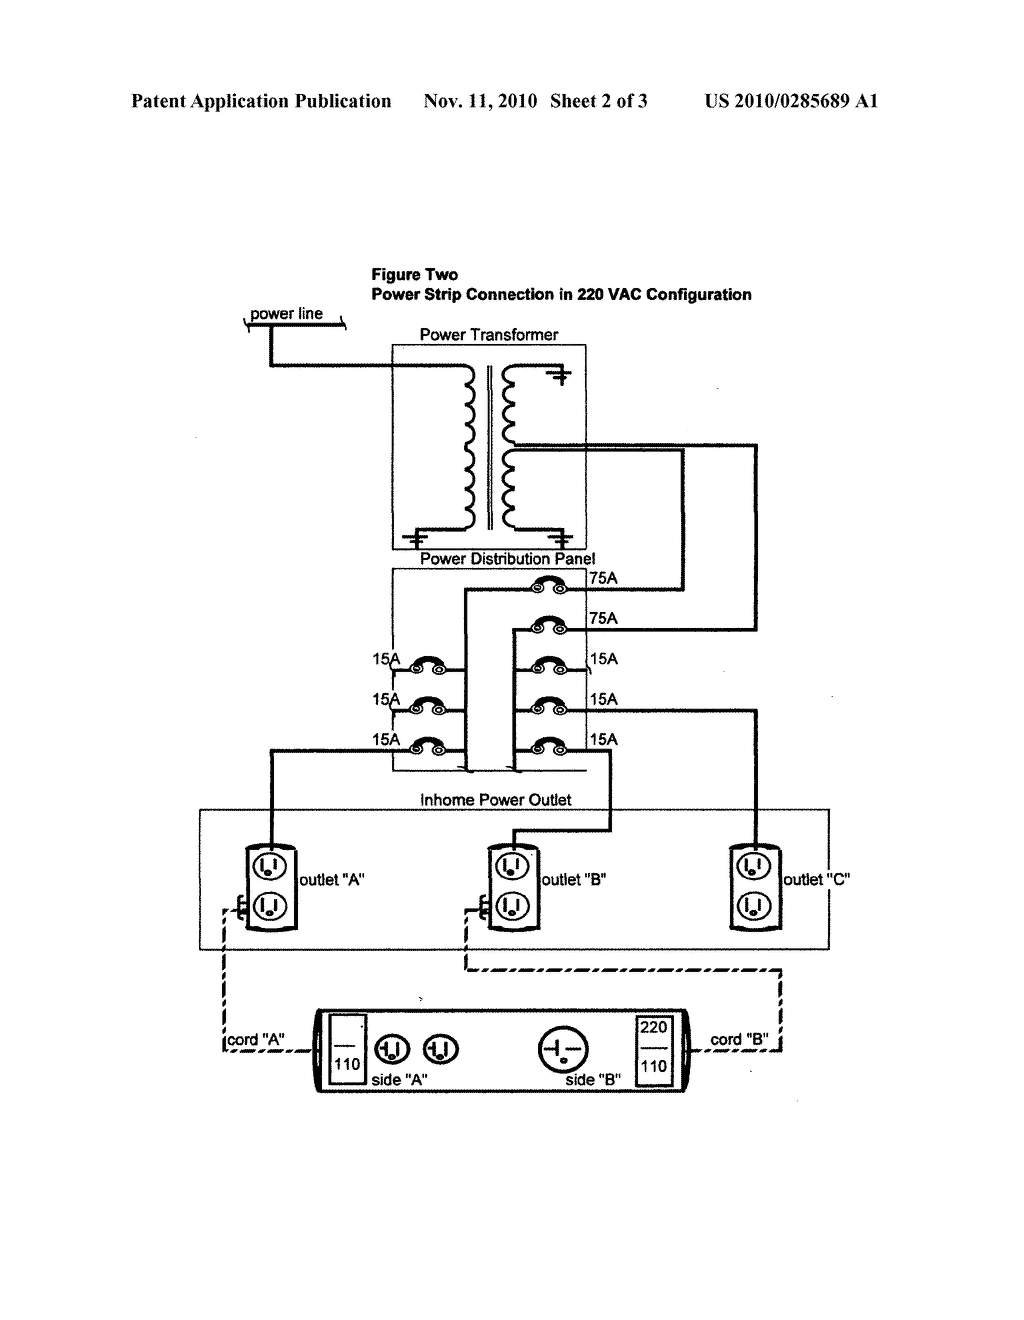 hight resolution of power strip schematic my wiring diagram power strip with 110 and 220 volt outlets diagram